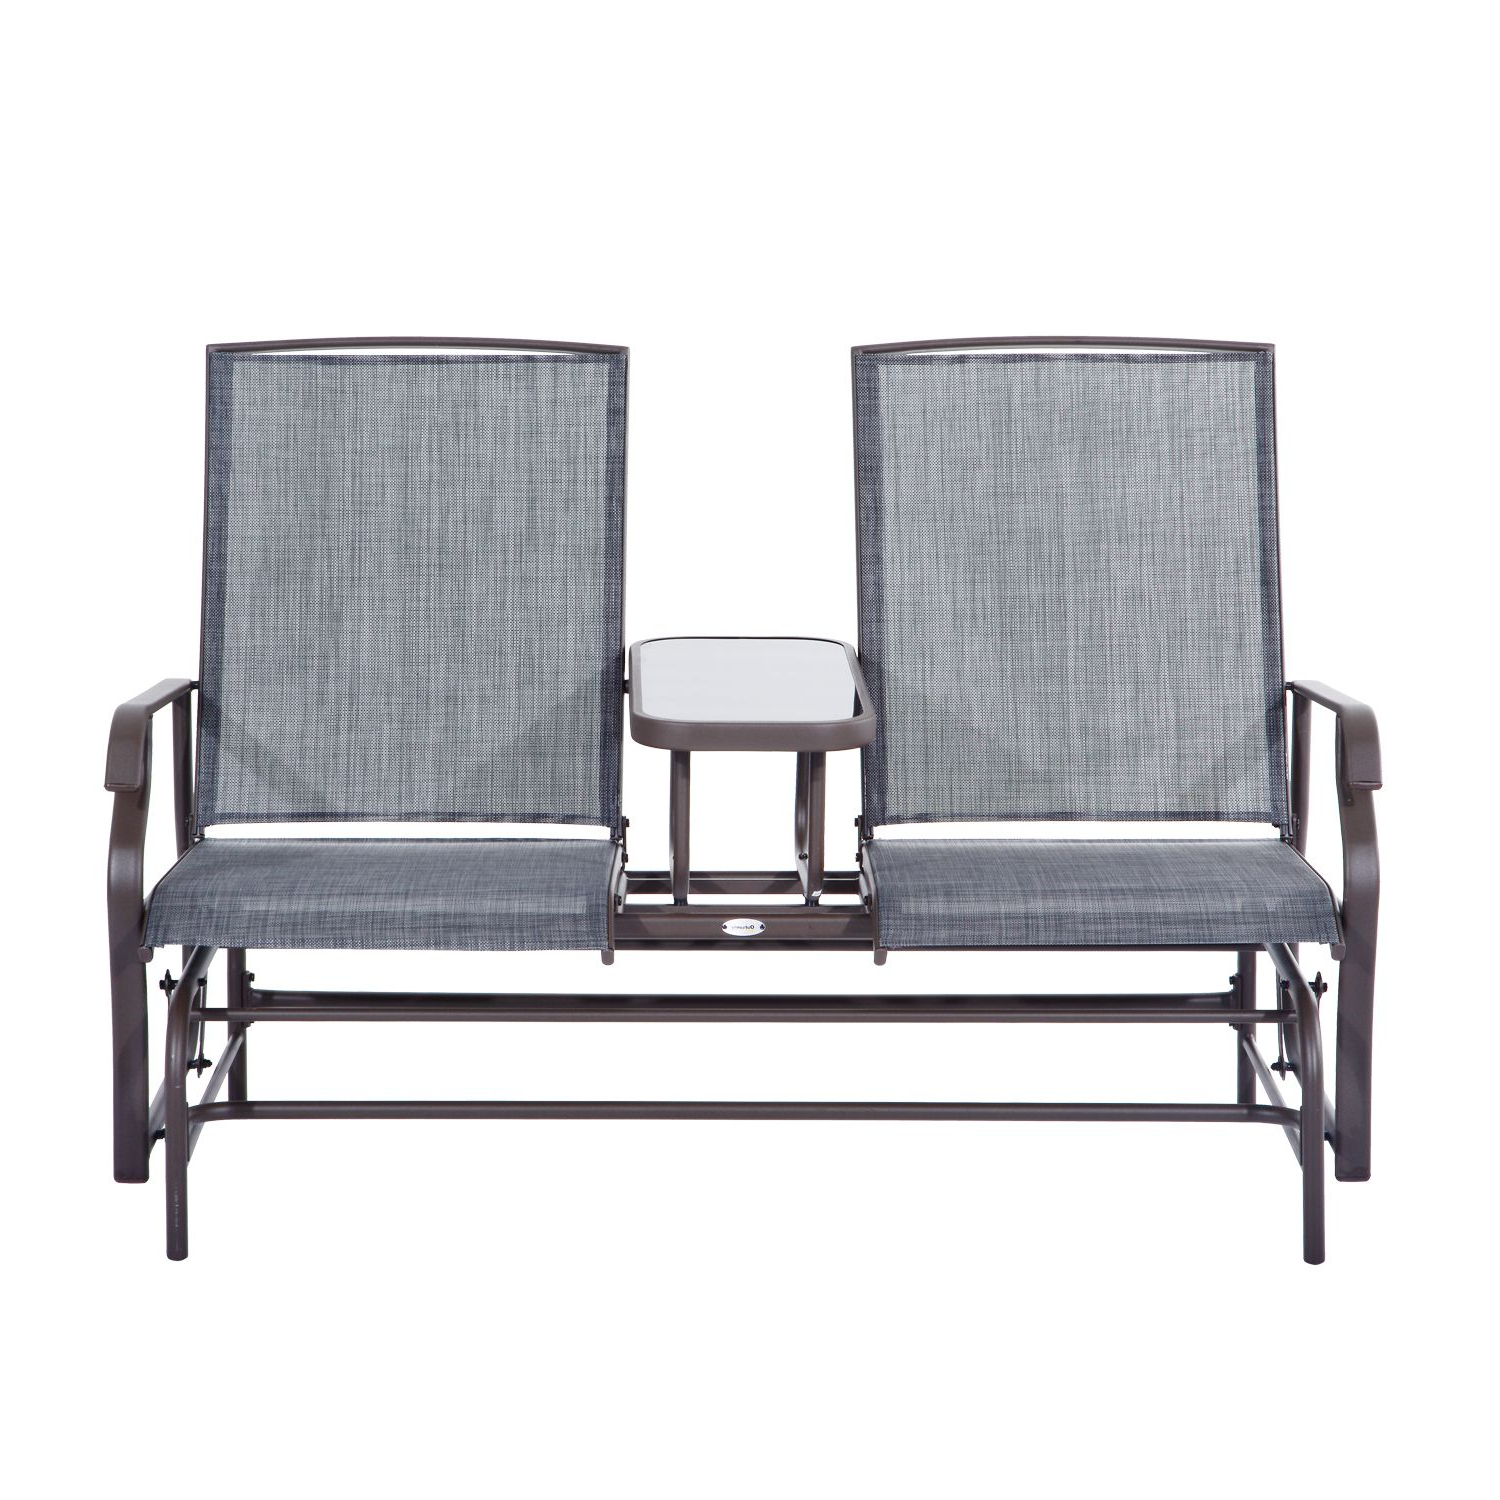 Outsunny Patio Glider Rocking Chair 2 Person Outdoor Loveseat Rocker Garden  Furniture Bench Pertaining To Famous Double Glider Benches With Cushion (Gallery 22 of 30)